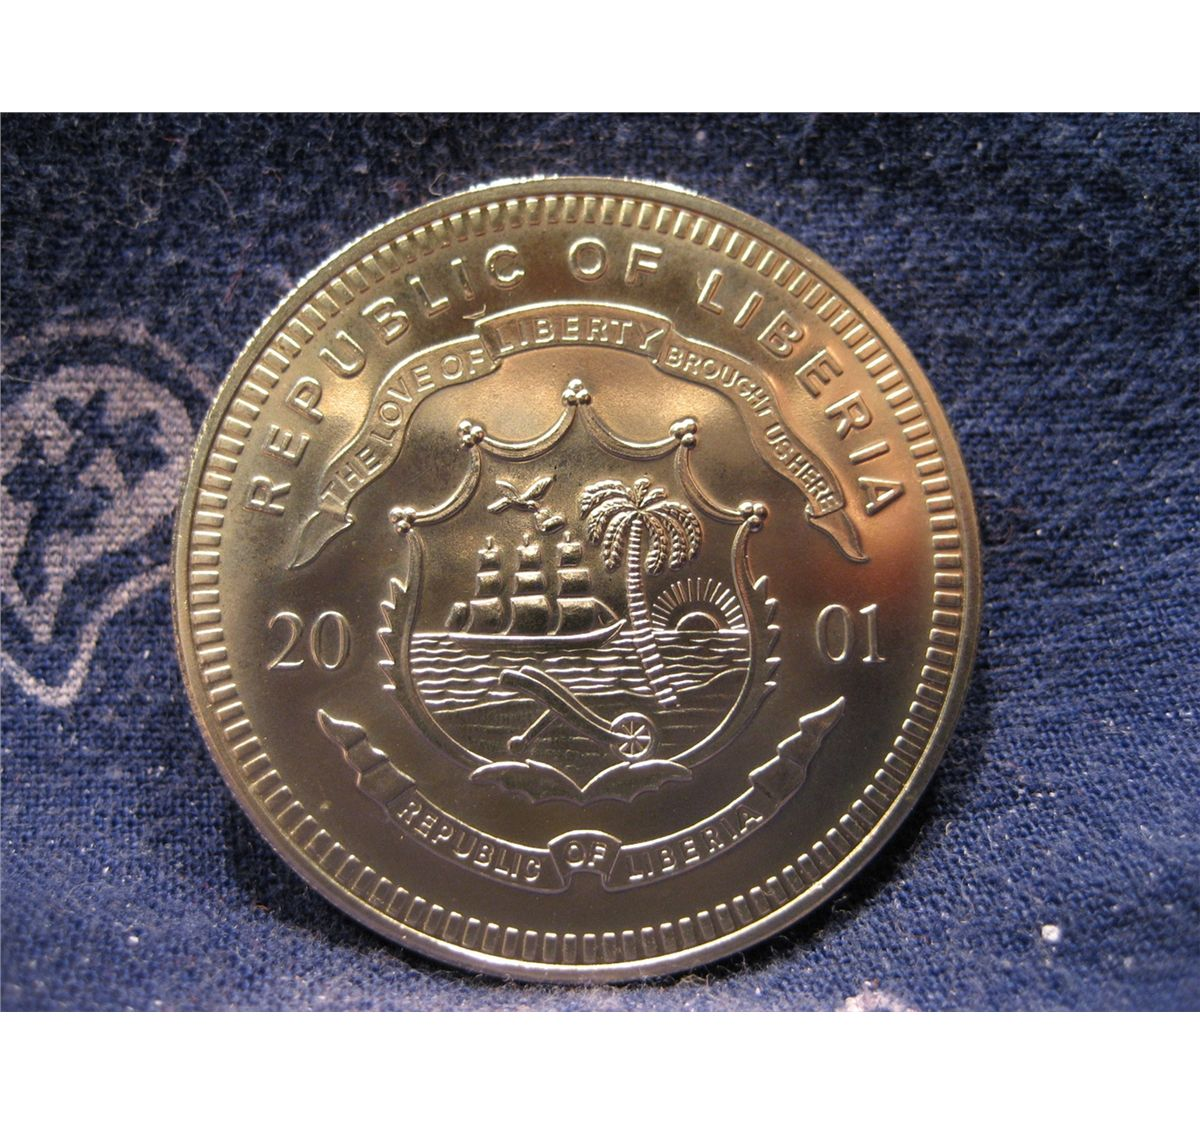 Image 2 2001 Republic Of Liberia 5 Five Dollar Coin On Pearl Harbor